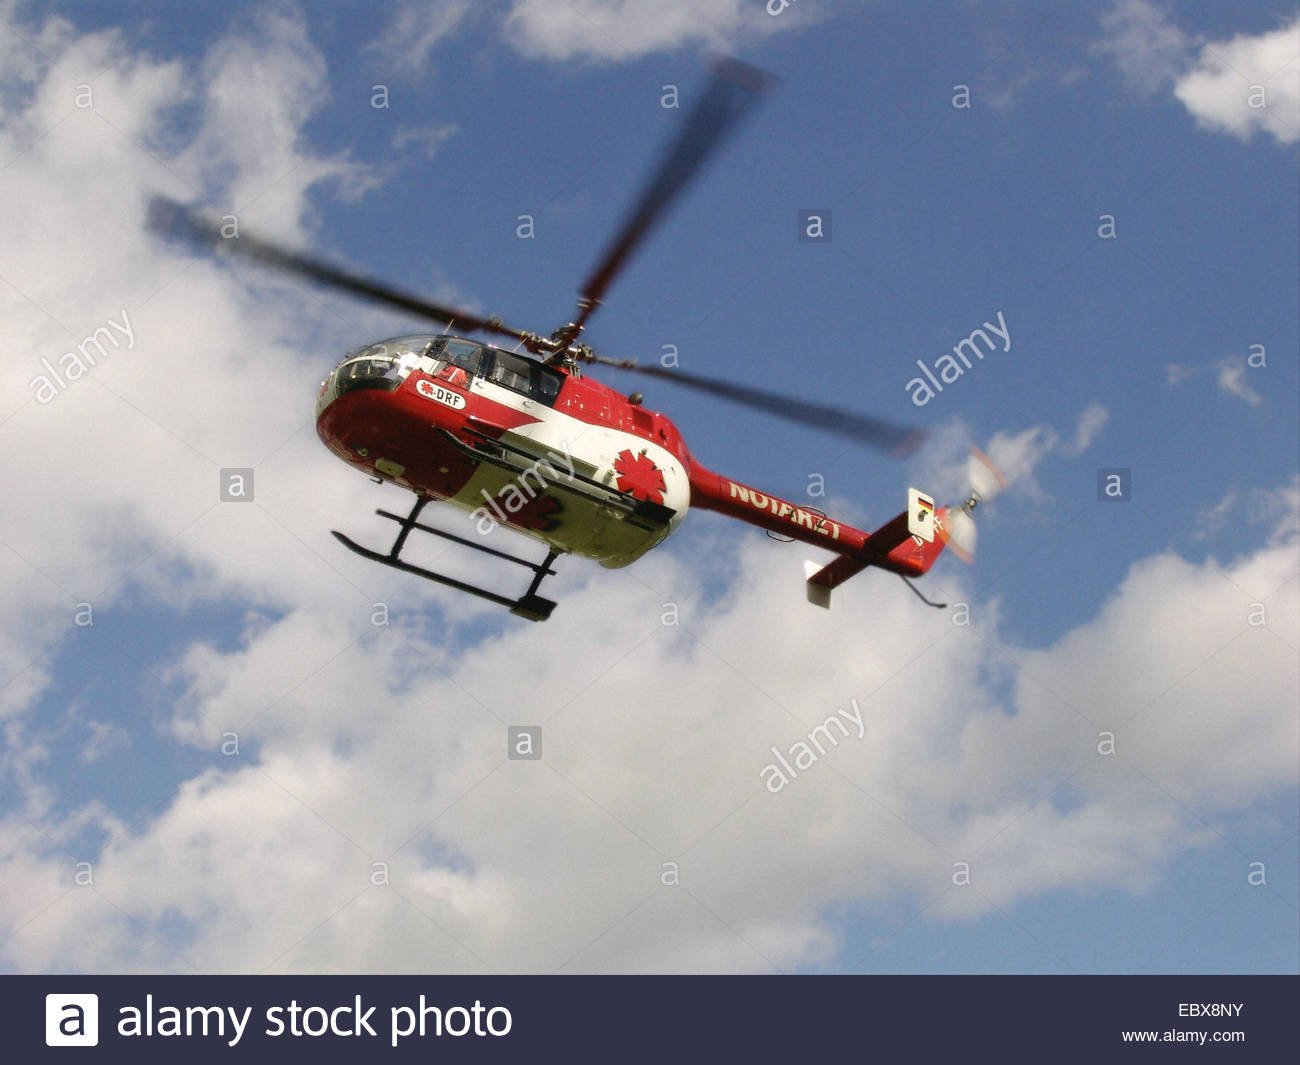 rescue helicopter from below - Stock Image